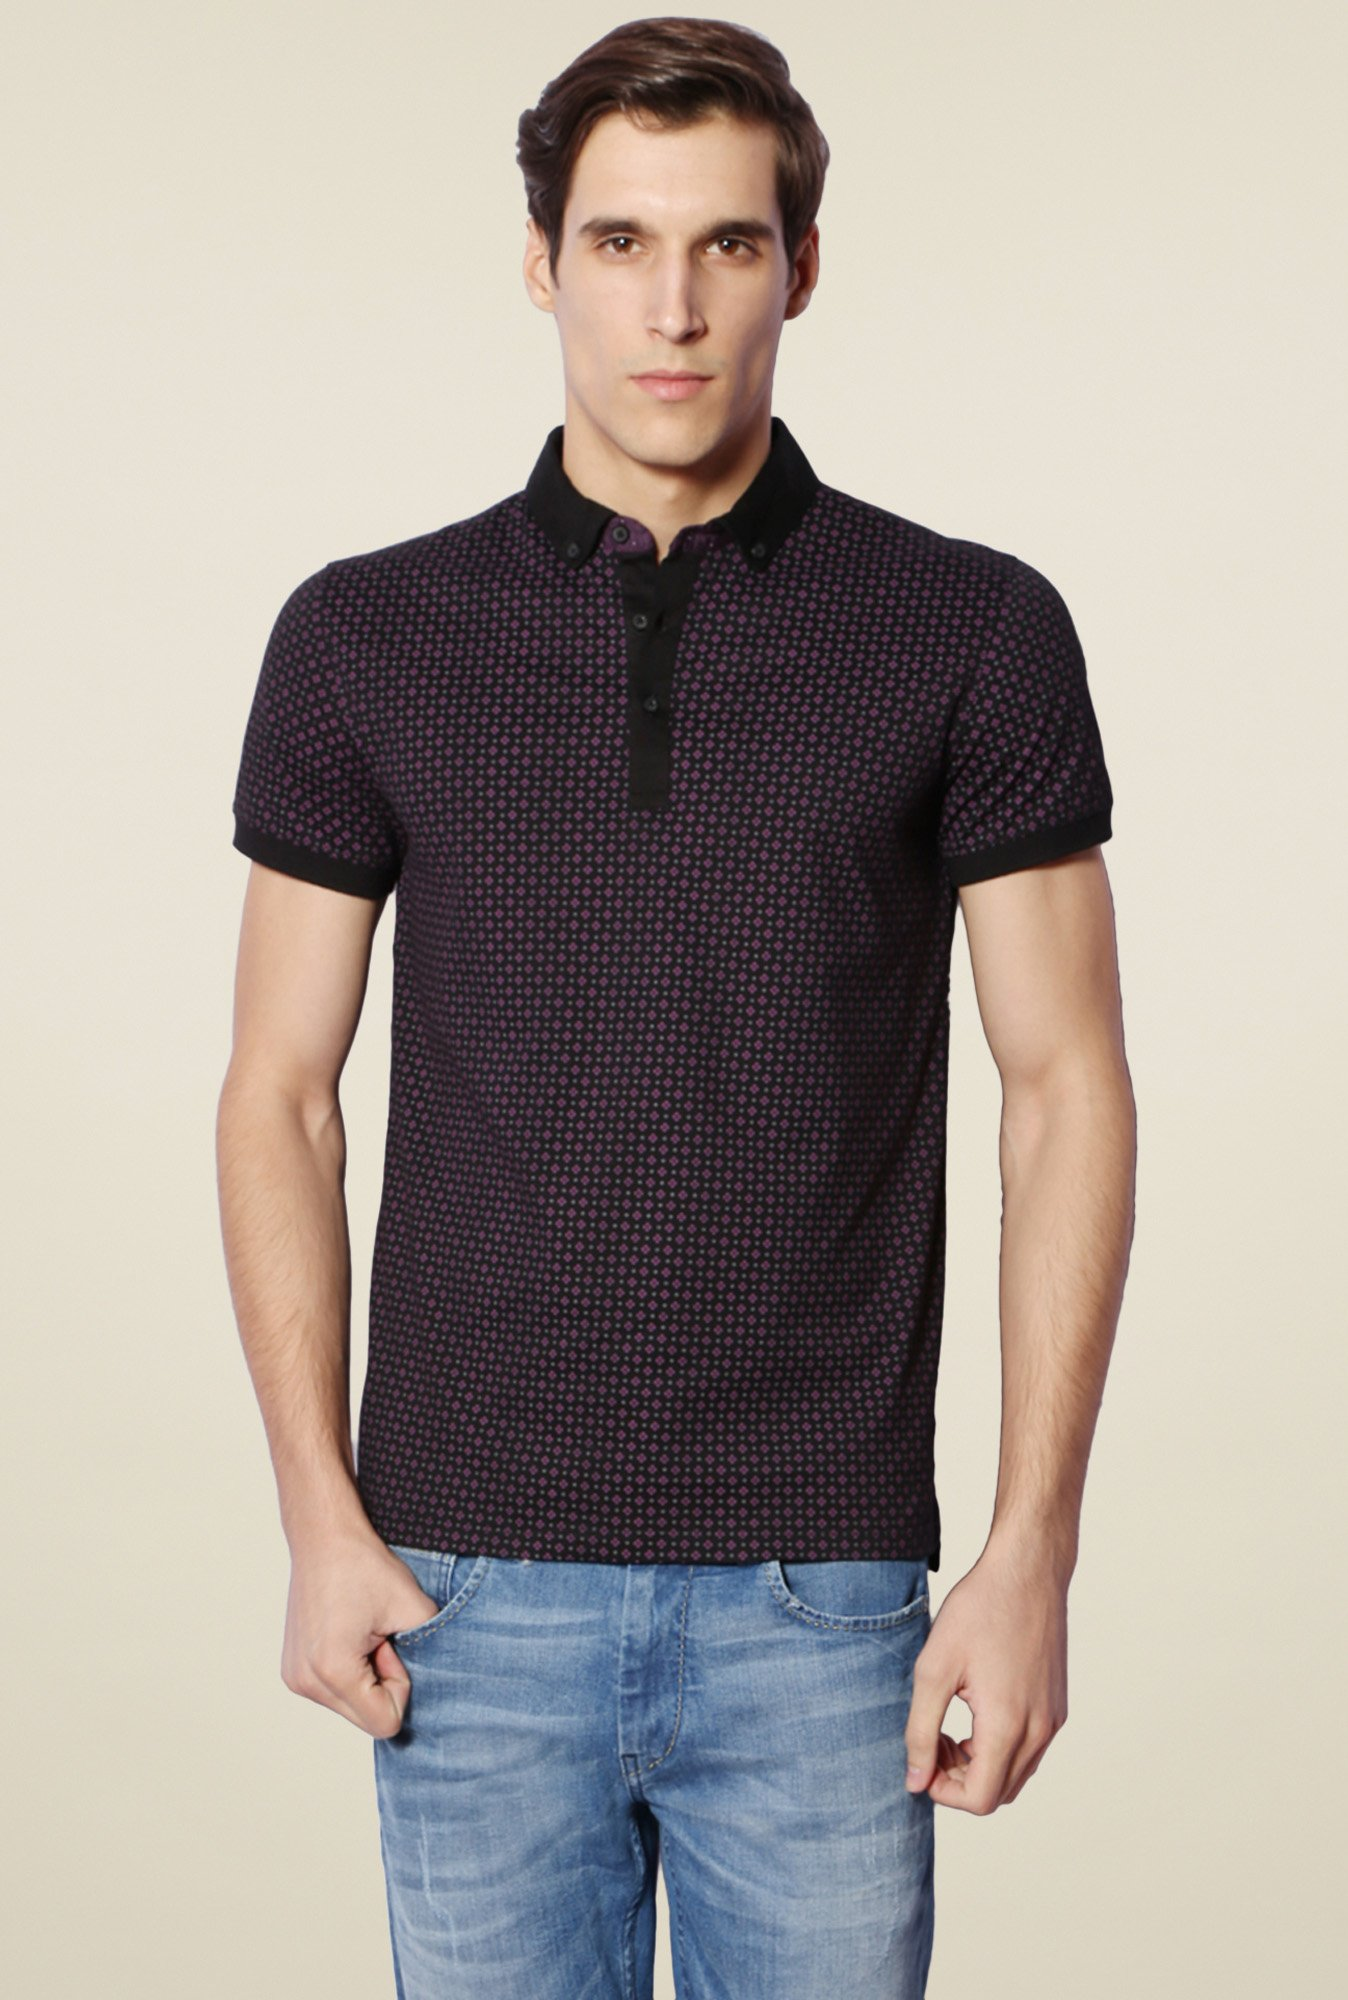 Van Heusen Black & Purple Printed Cotton T-Shirt